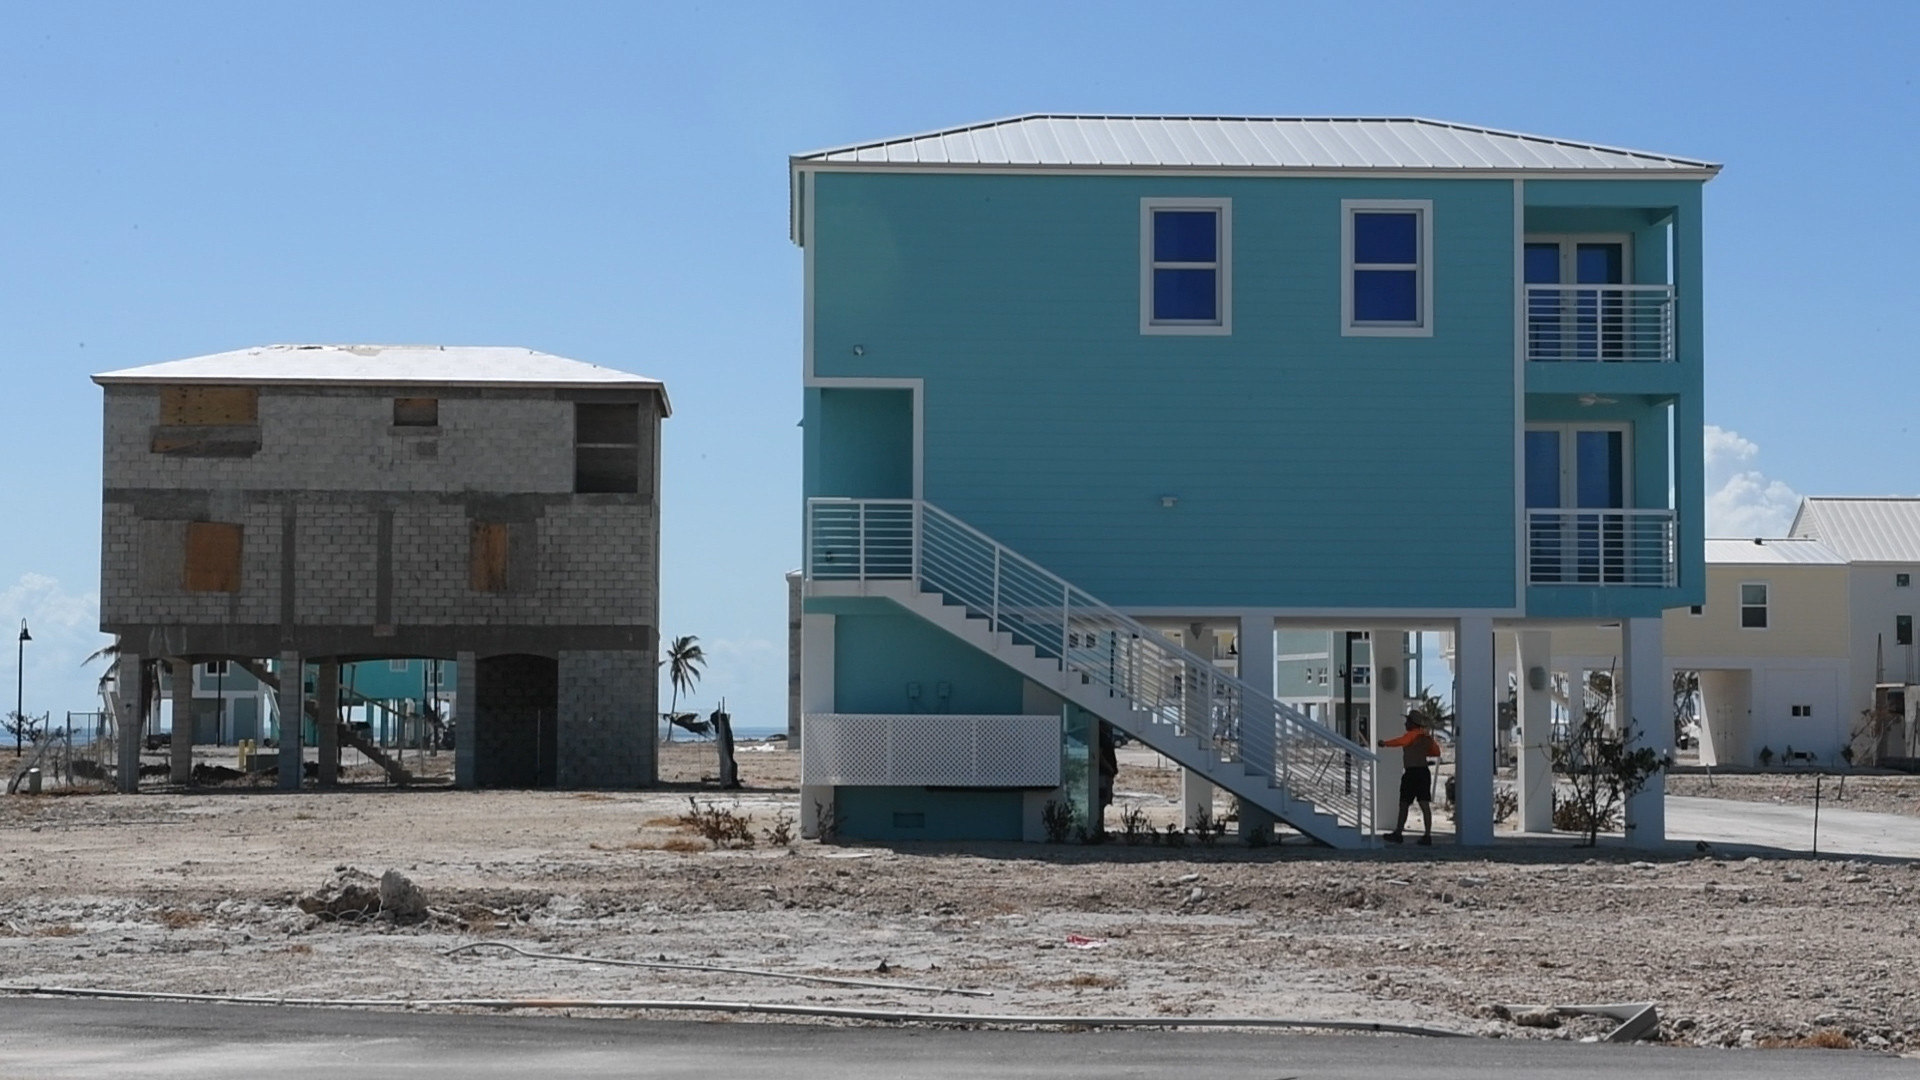 Stilt Homes In Florida Keys Stand Tall In Face Of